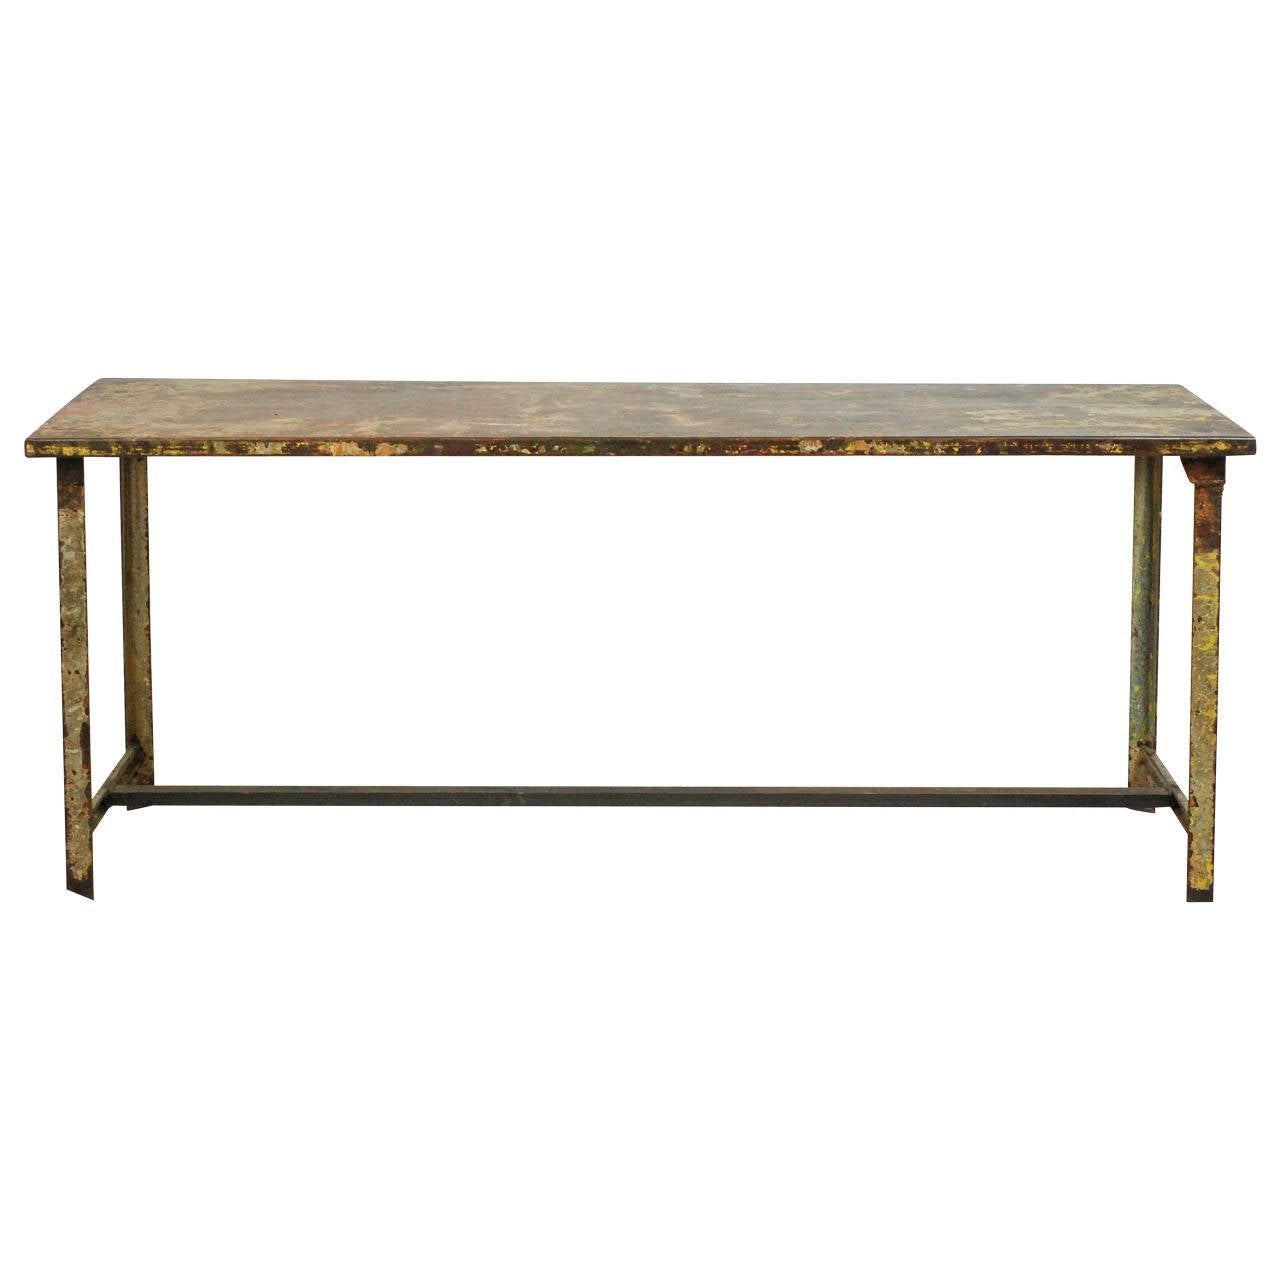 Vintage French Iron Military Table